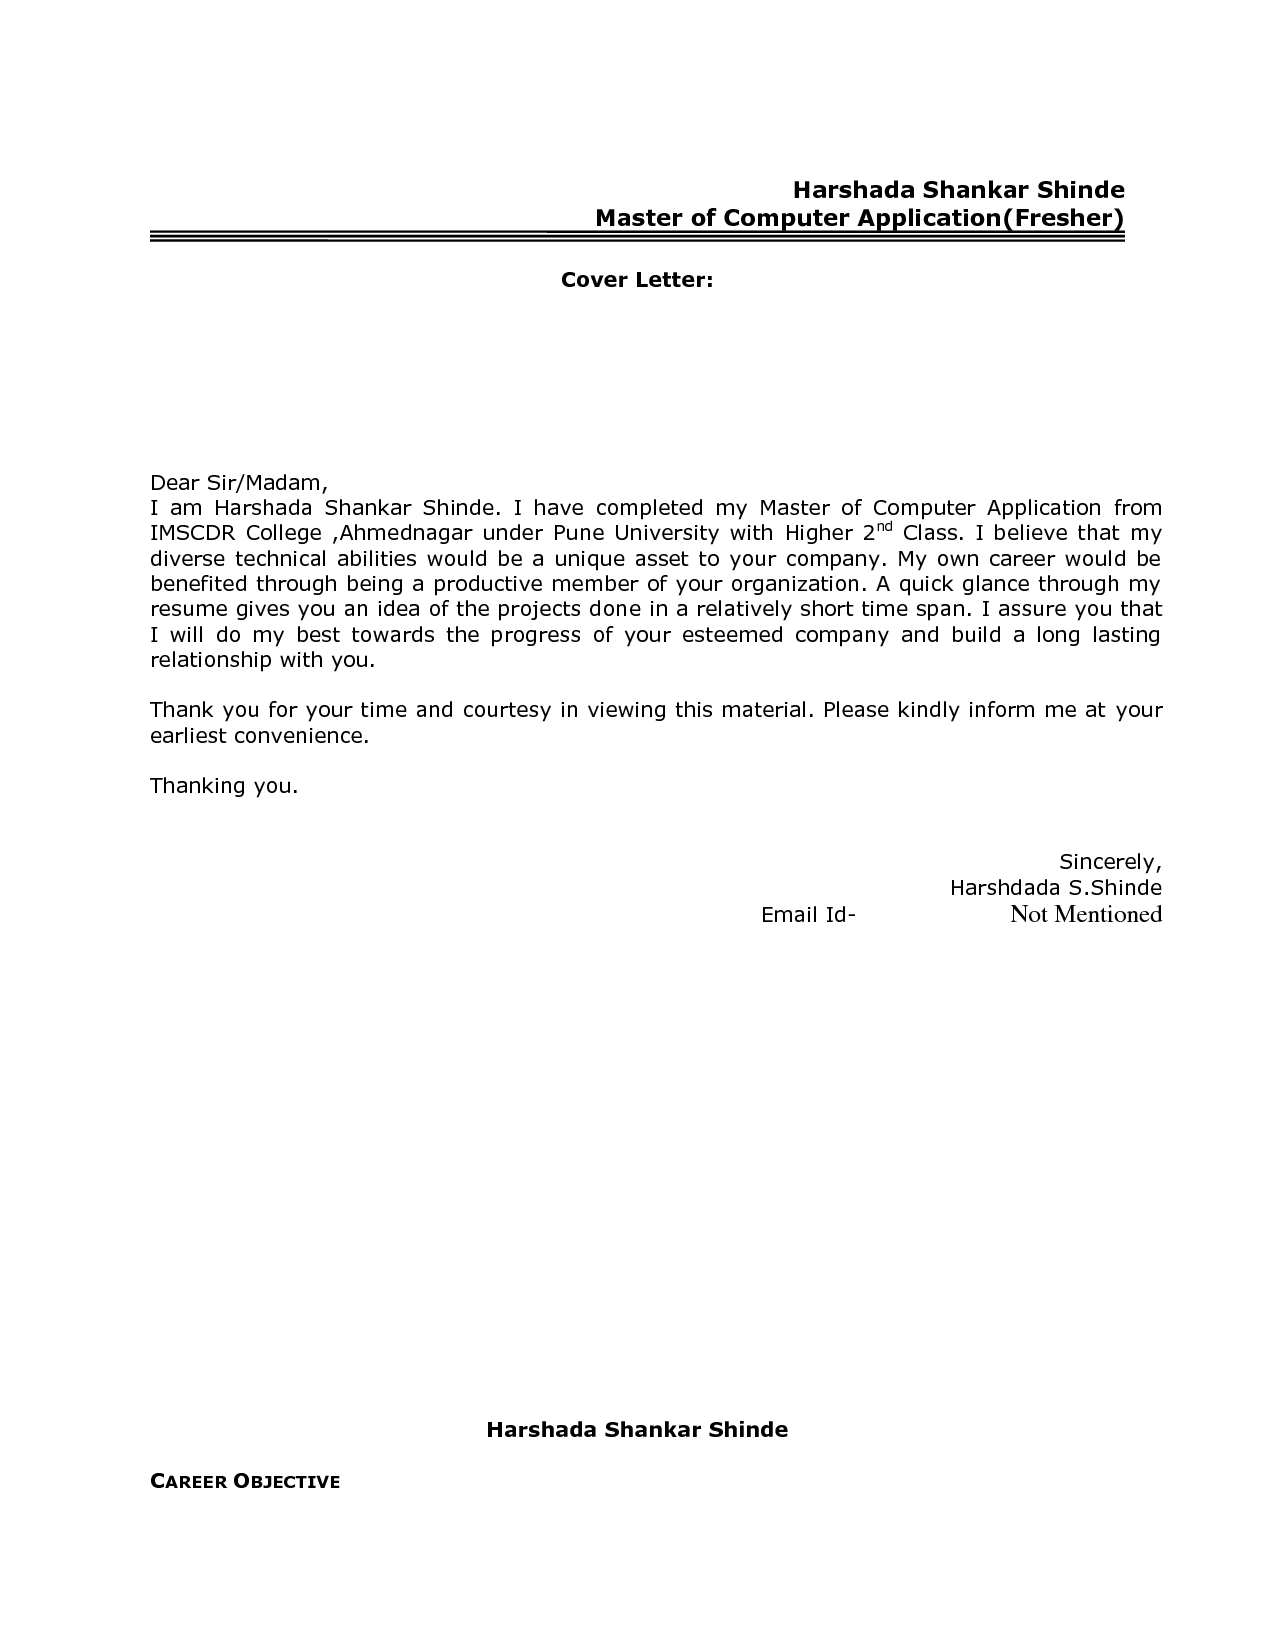 Cover Letter Of Resume Best Resume Cover Letter Format For Freshers Govt Jobcover Letter